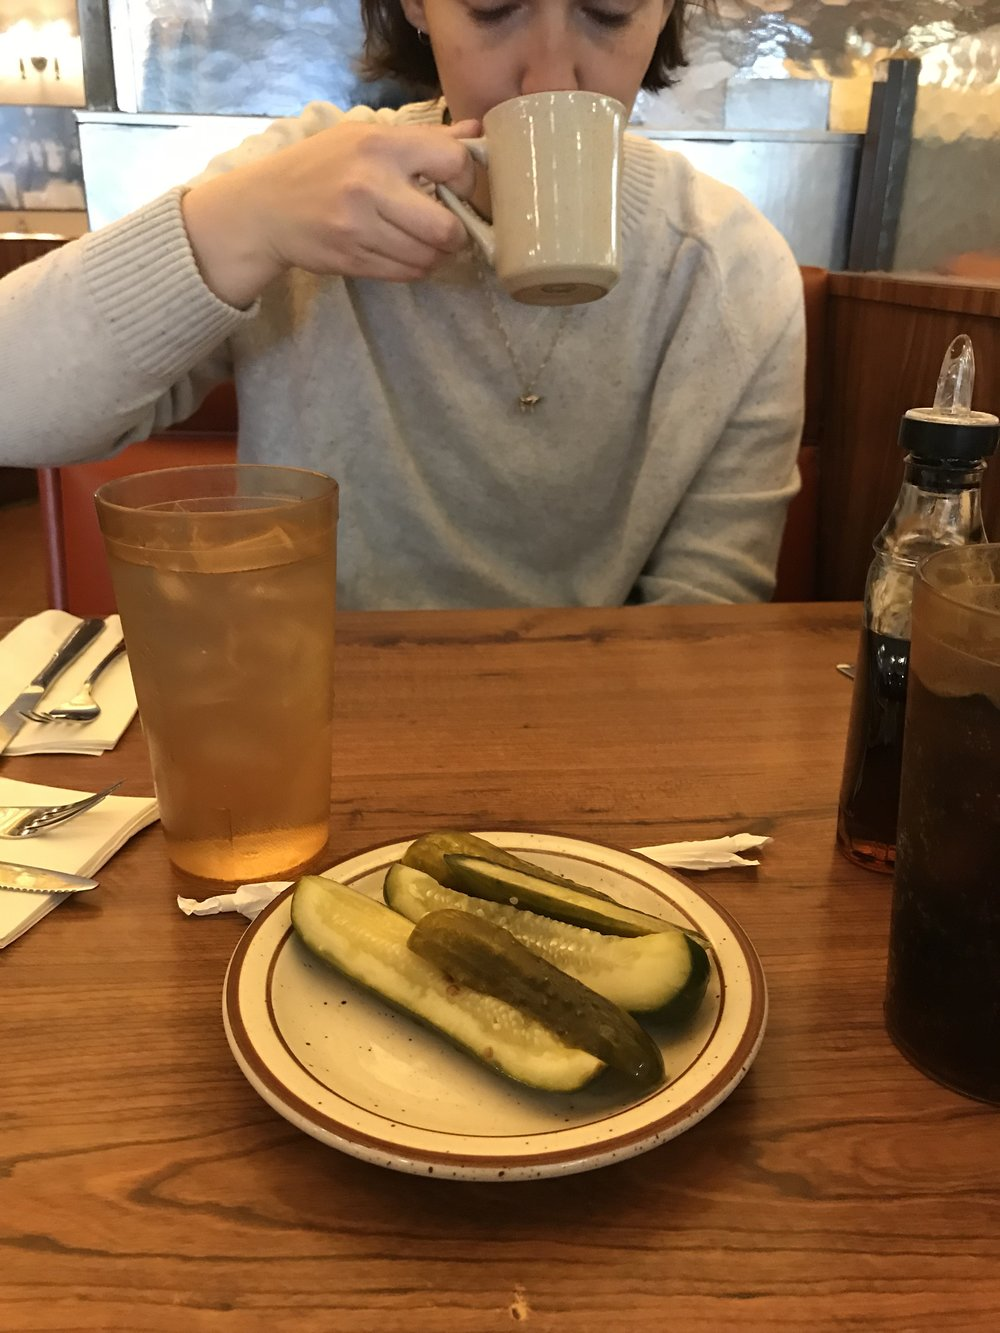 Whenever we get to Canters, I immediately order a plate of pickles that I eat while we wait for our food. Canters makes their own pickles and they're SO good.  If you're in LA and a pickle fan, you need to try these.